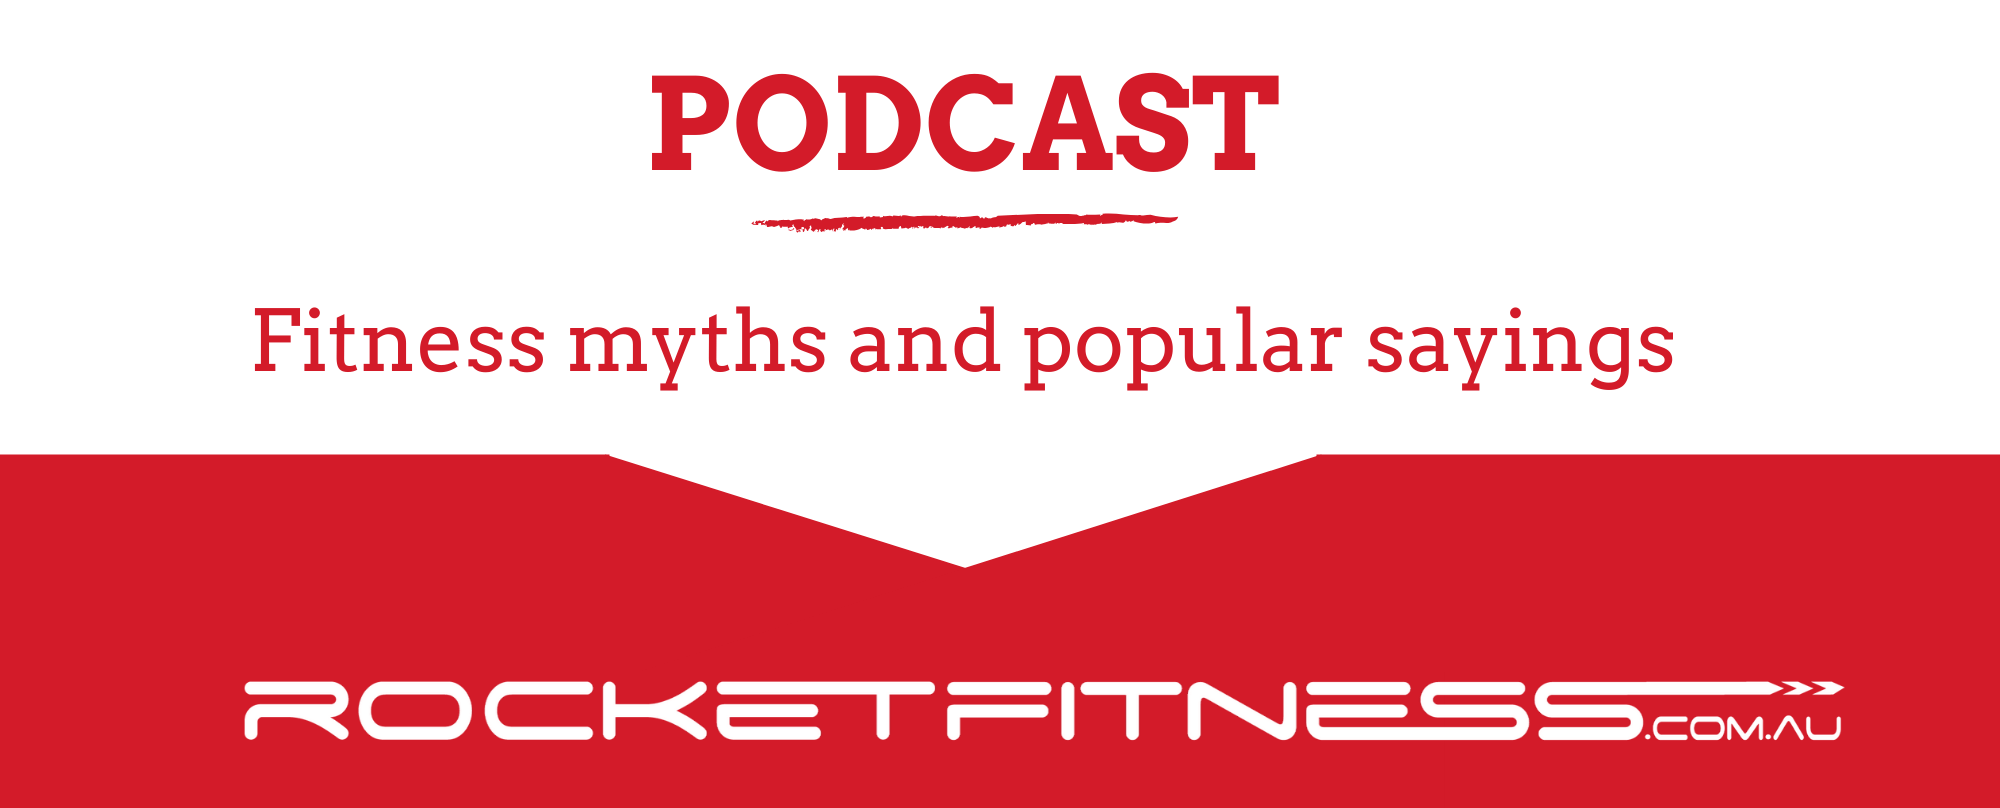 Fitness myths and popular sayings